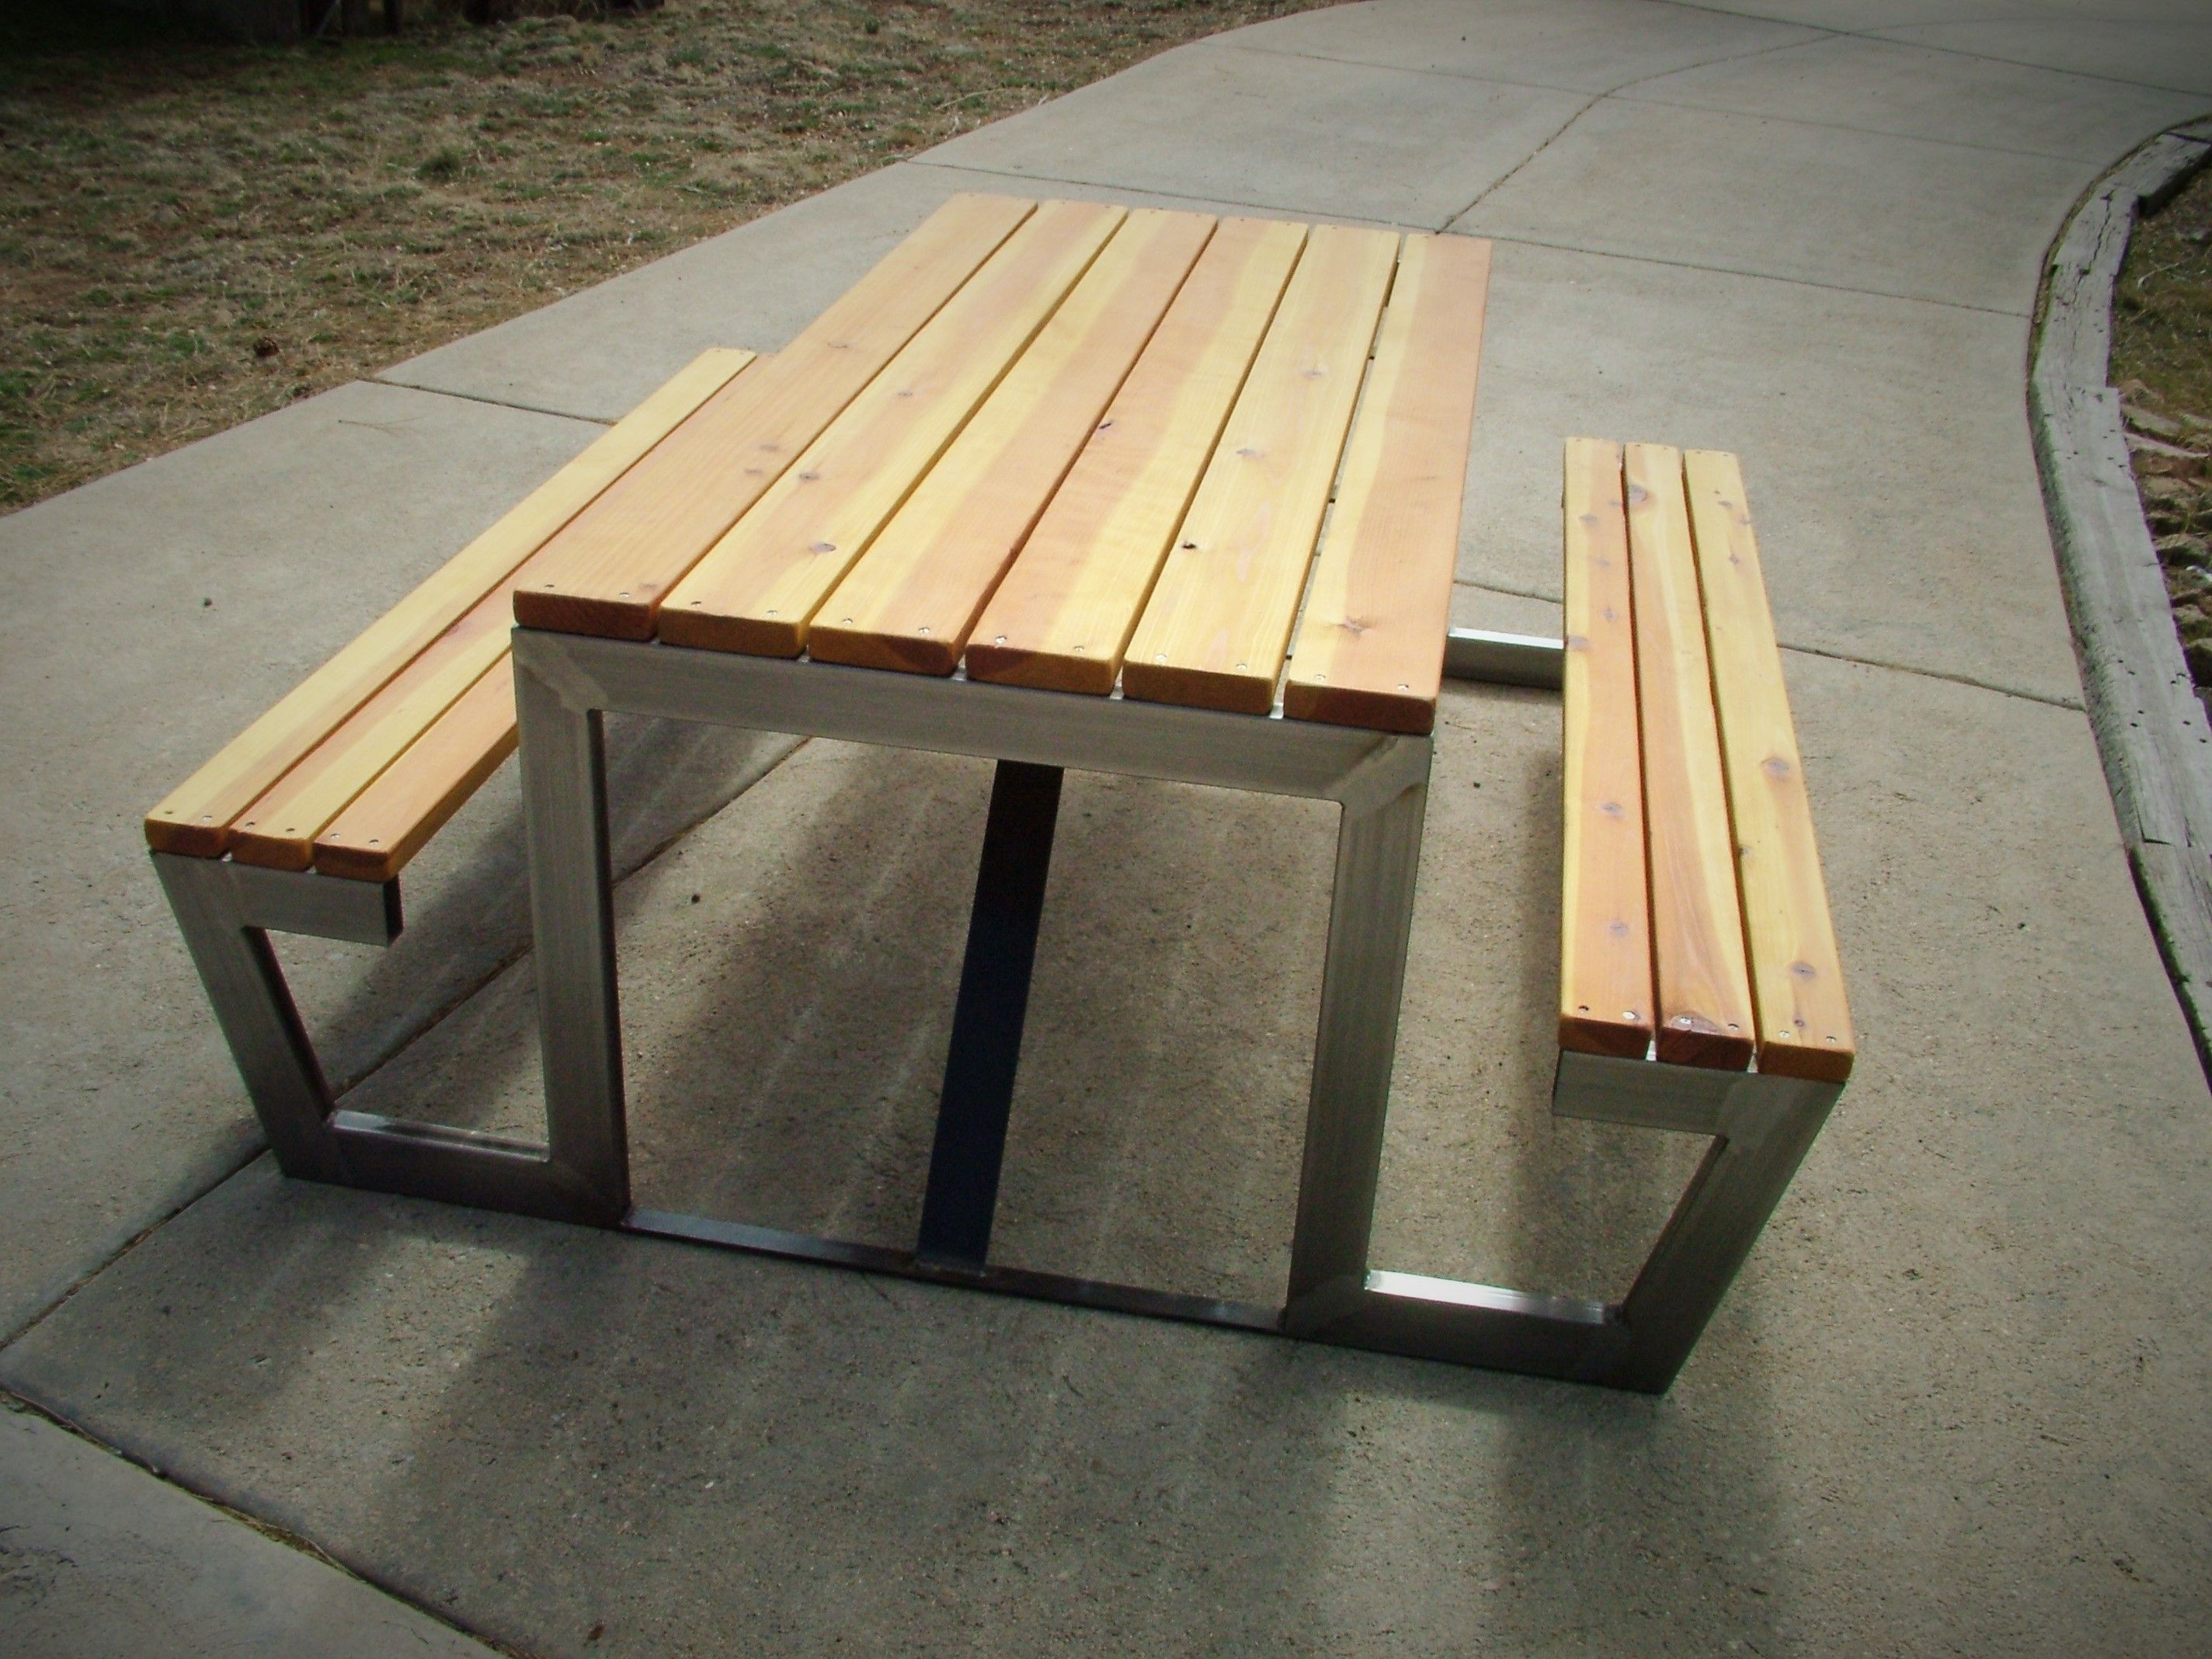 Gentil Modern Picnic Table Room Ideas Renovation Marvelous Decorating